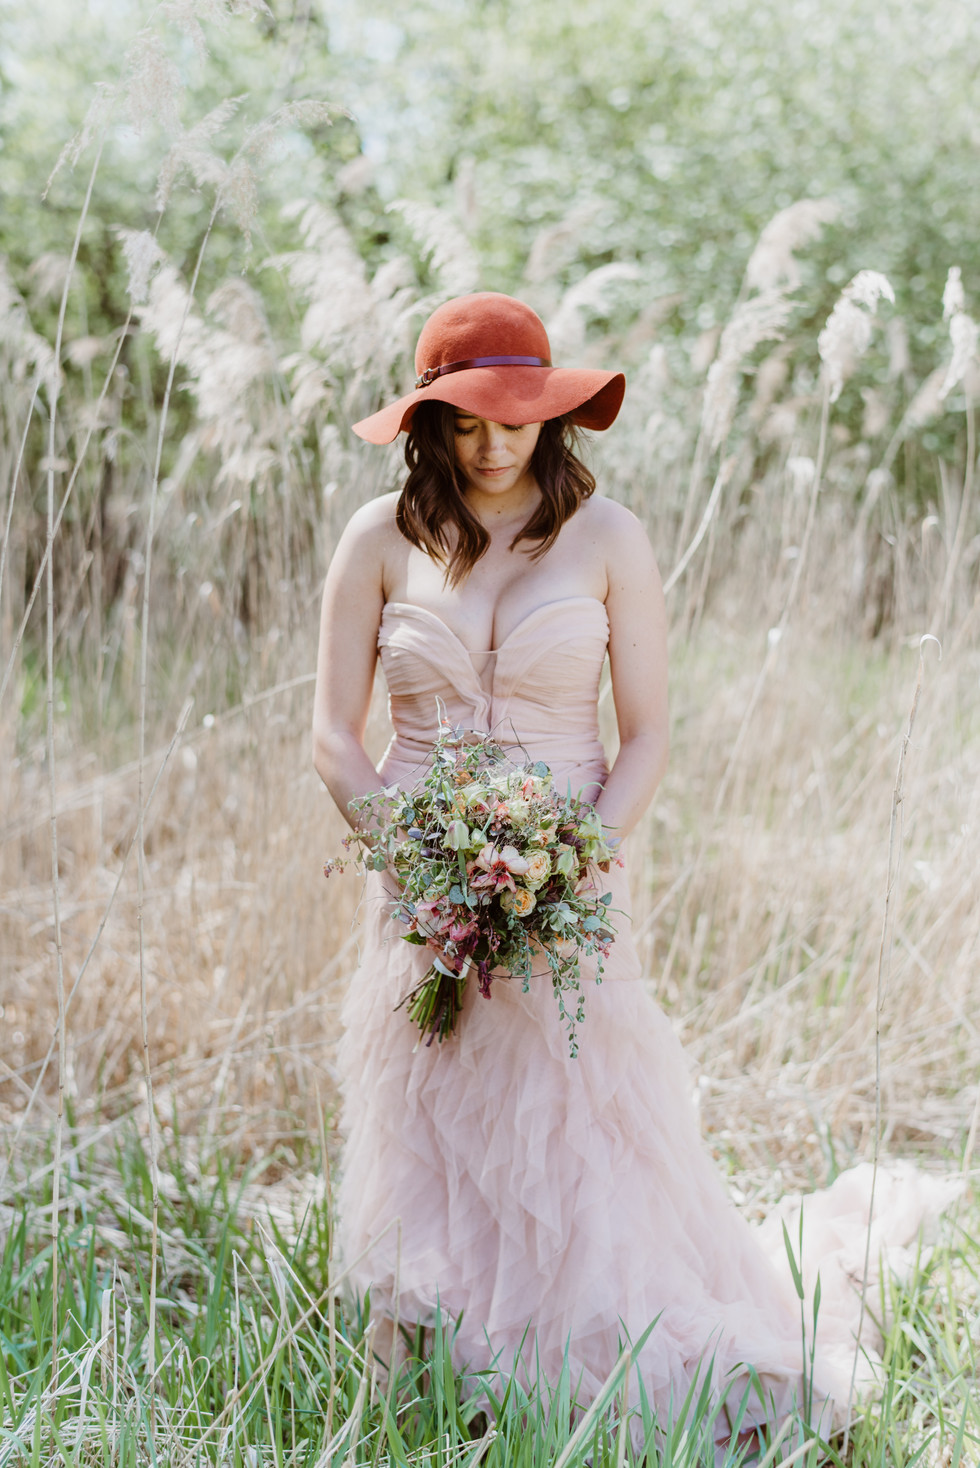 Foto: Andrea Rufener Photograph Flowers: Karin Mani FlowersDesign&more Styling: isaBELLE Haar&Make-up